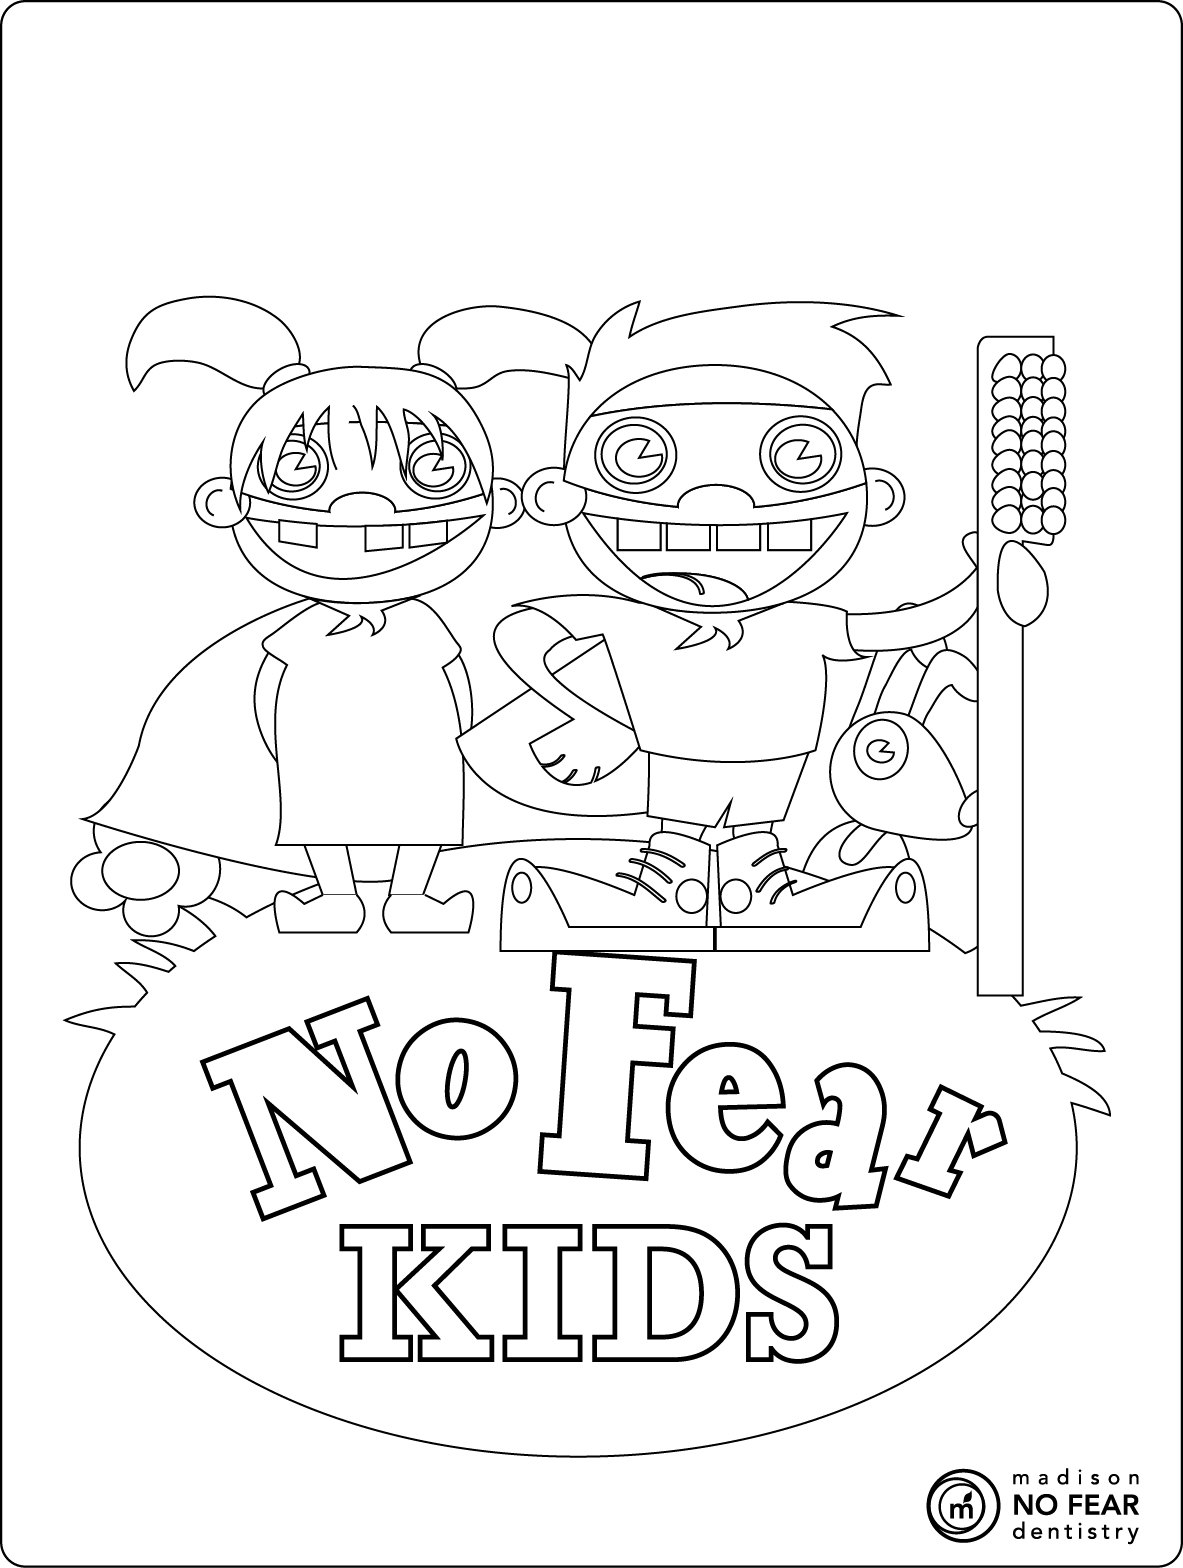 No Fear Kids Zone Download Of Coloring Pages tooth Coloring Pages Unique Happy Brush Dental Page Gallery